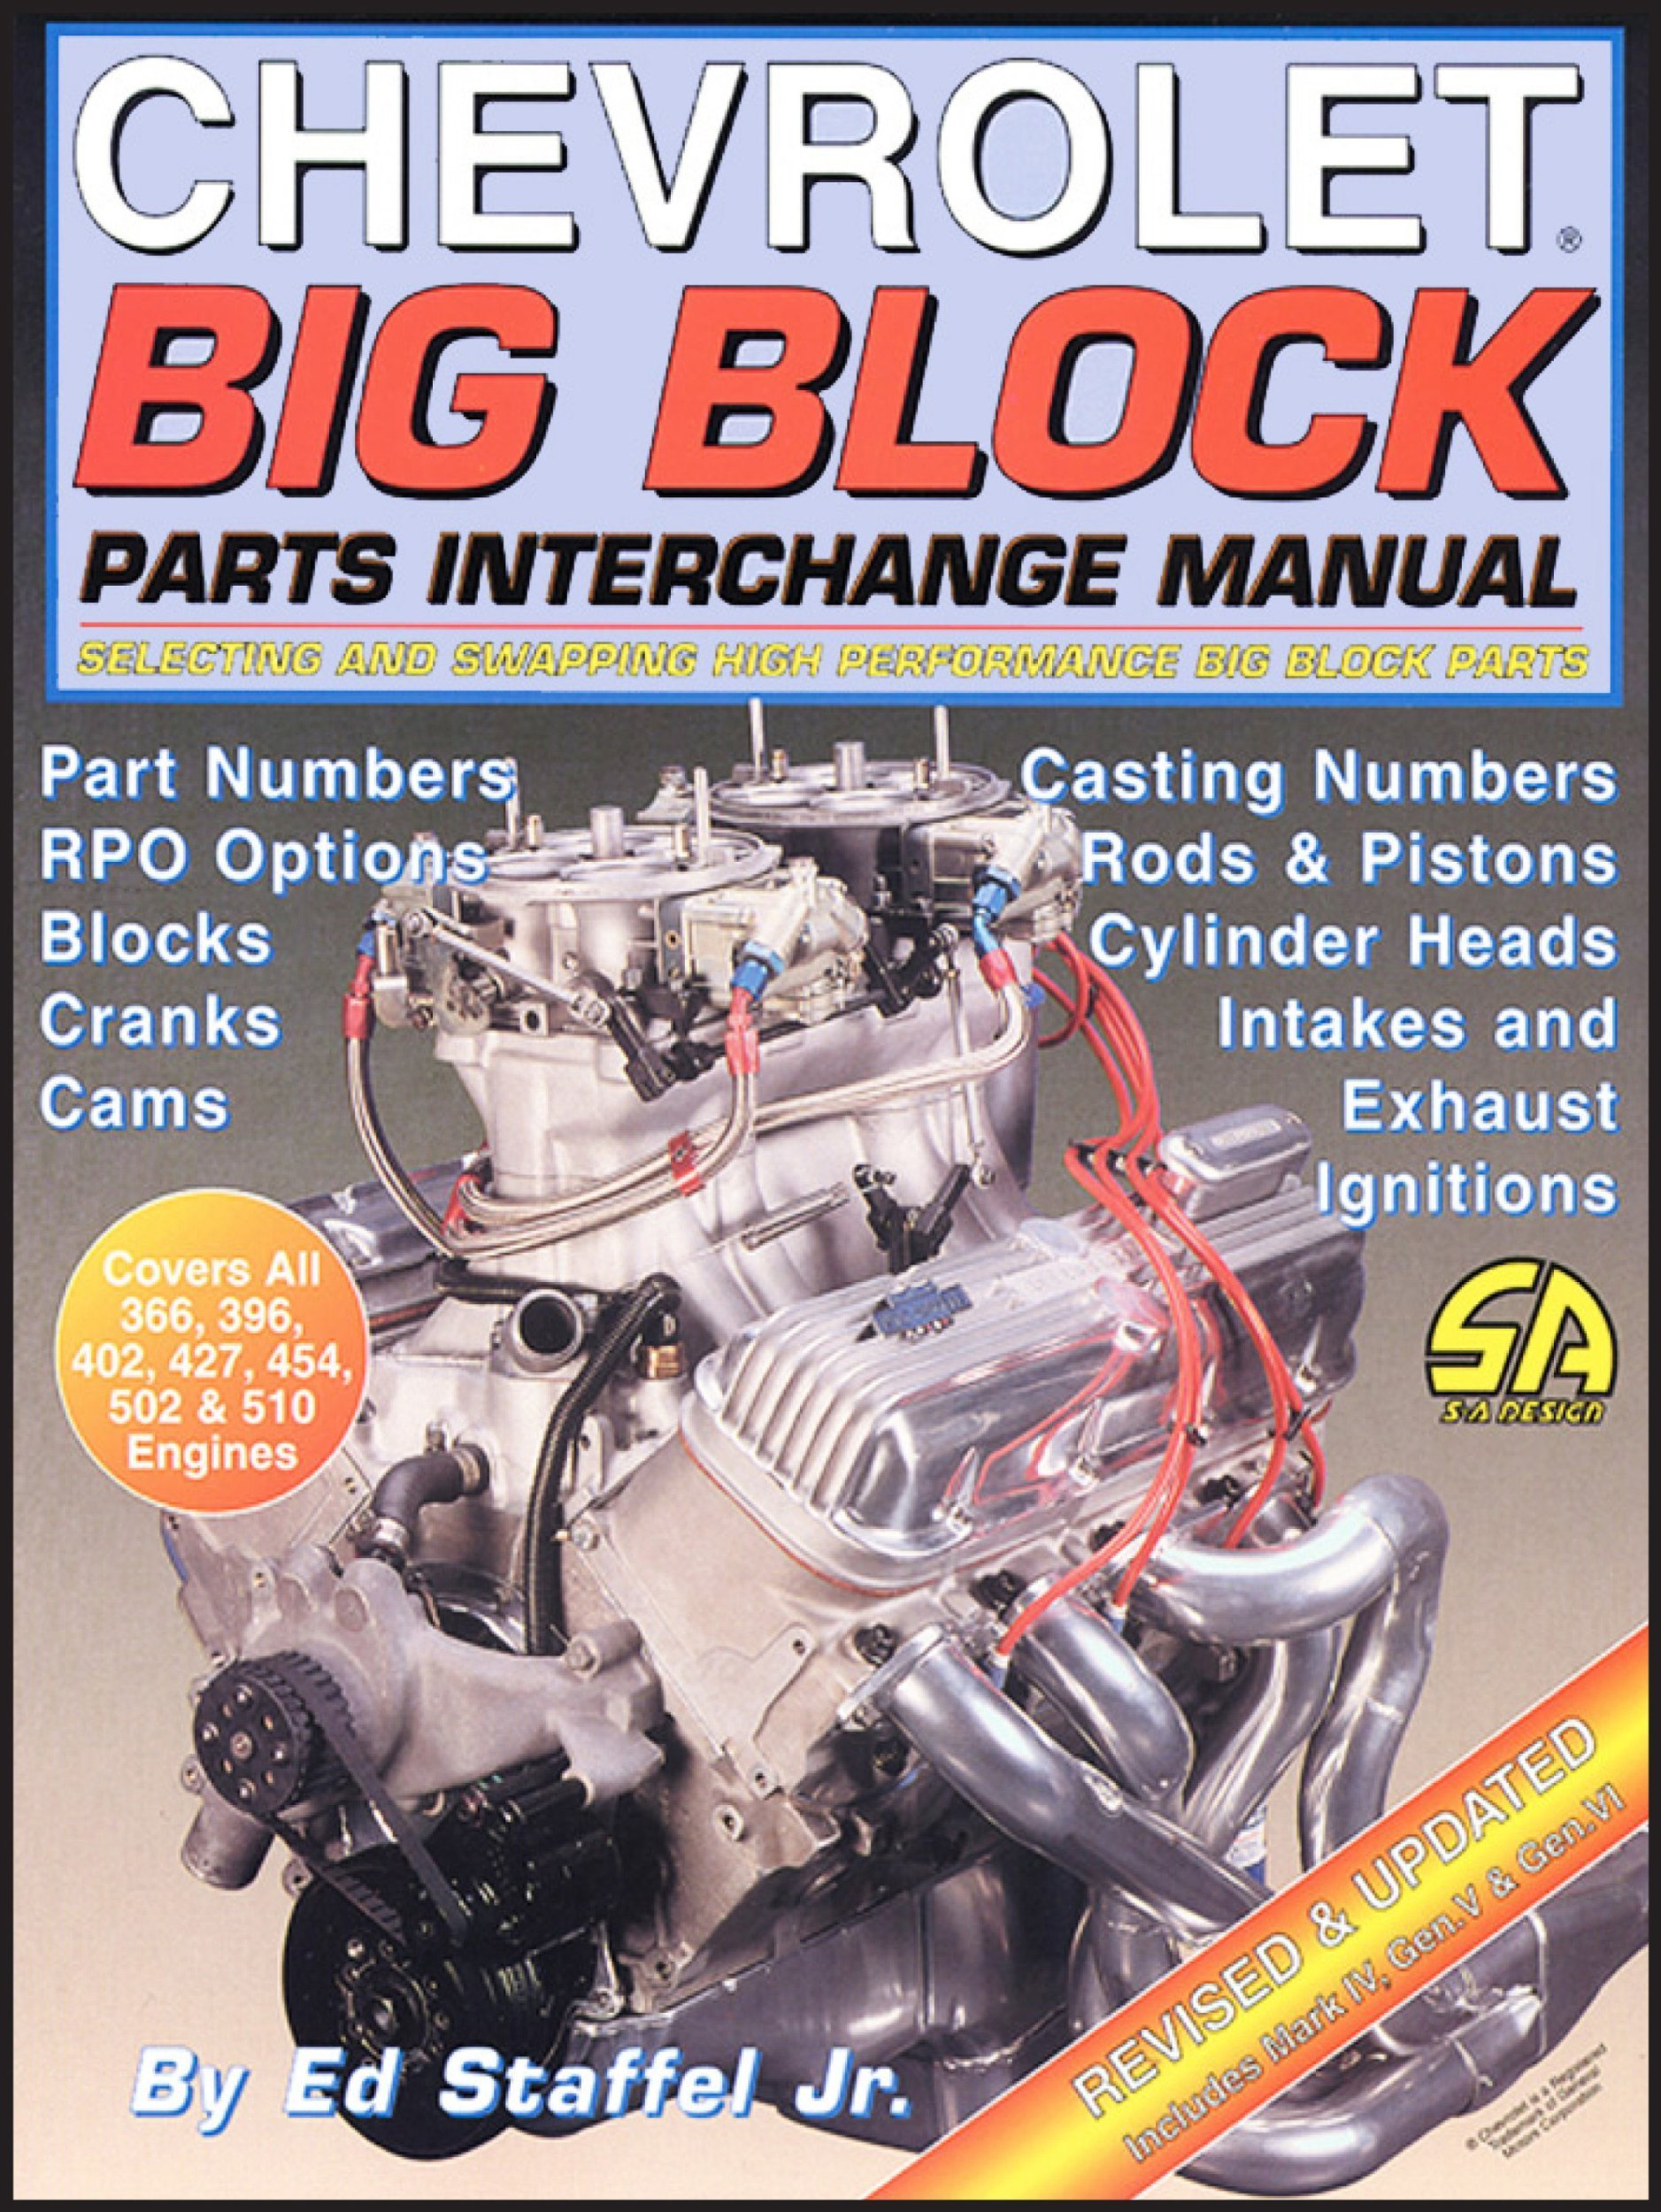 Chevrolet Big Block Parts Interchange Manual (S-A Design): Ed Staffel:  0601784000158: Amazon.com: Books